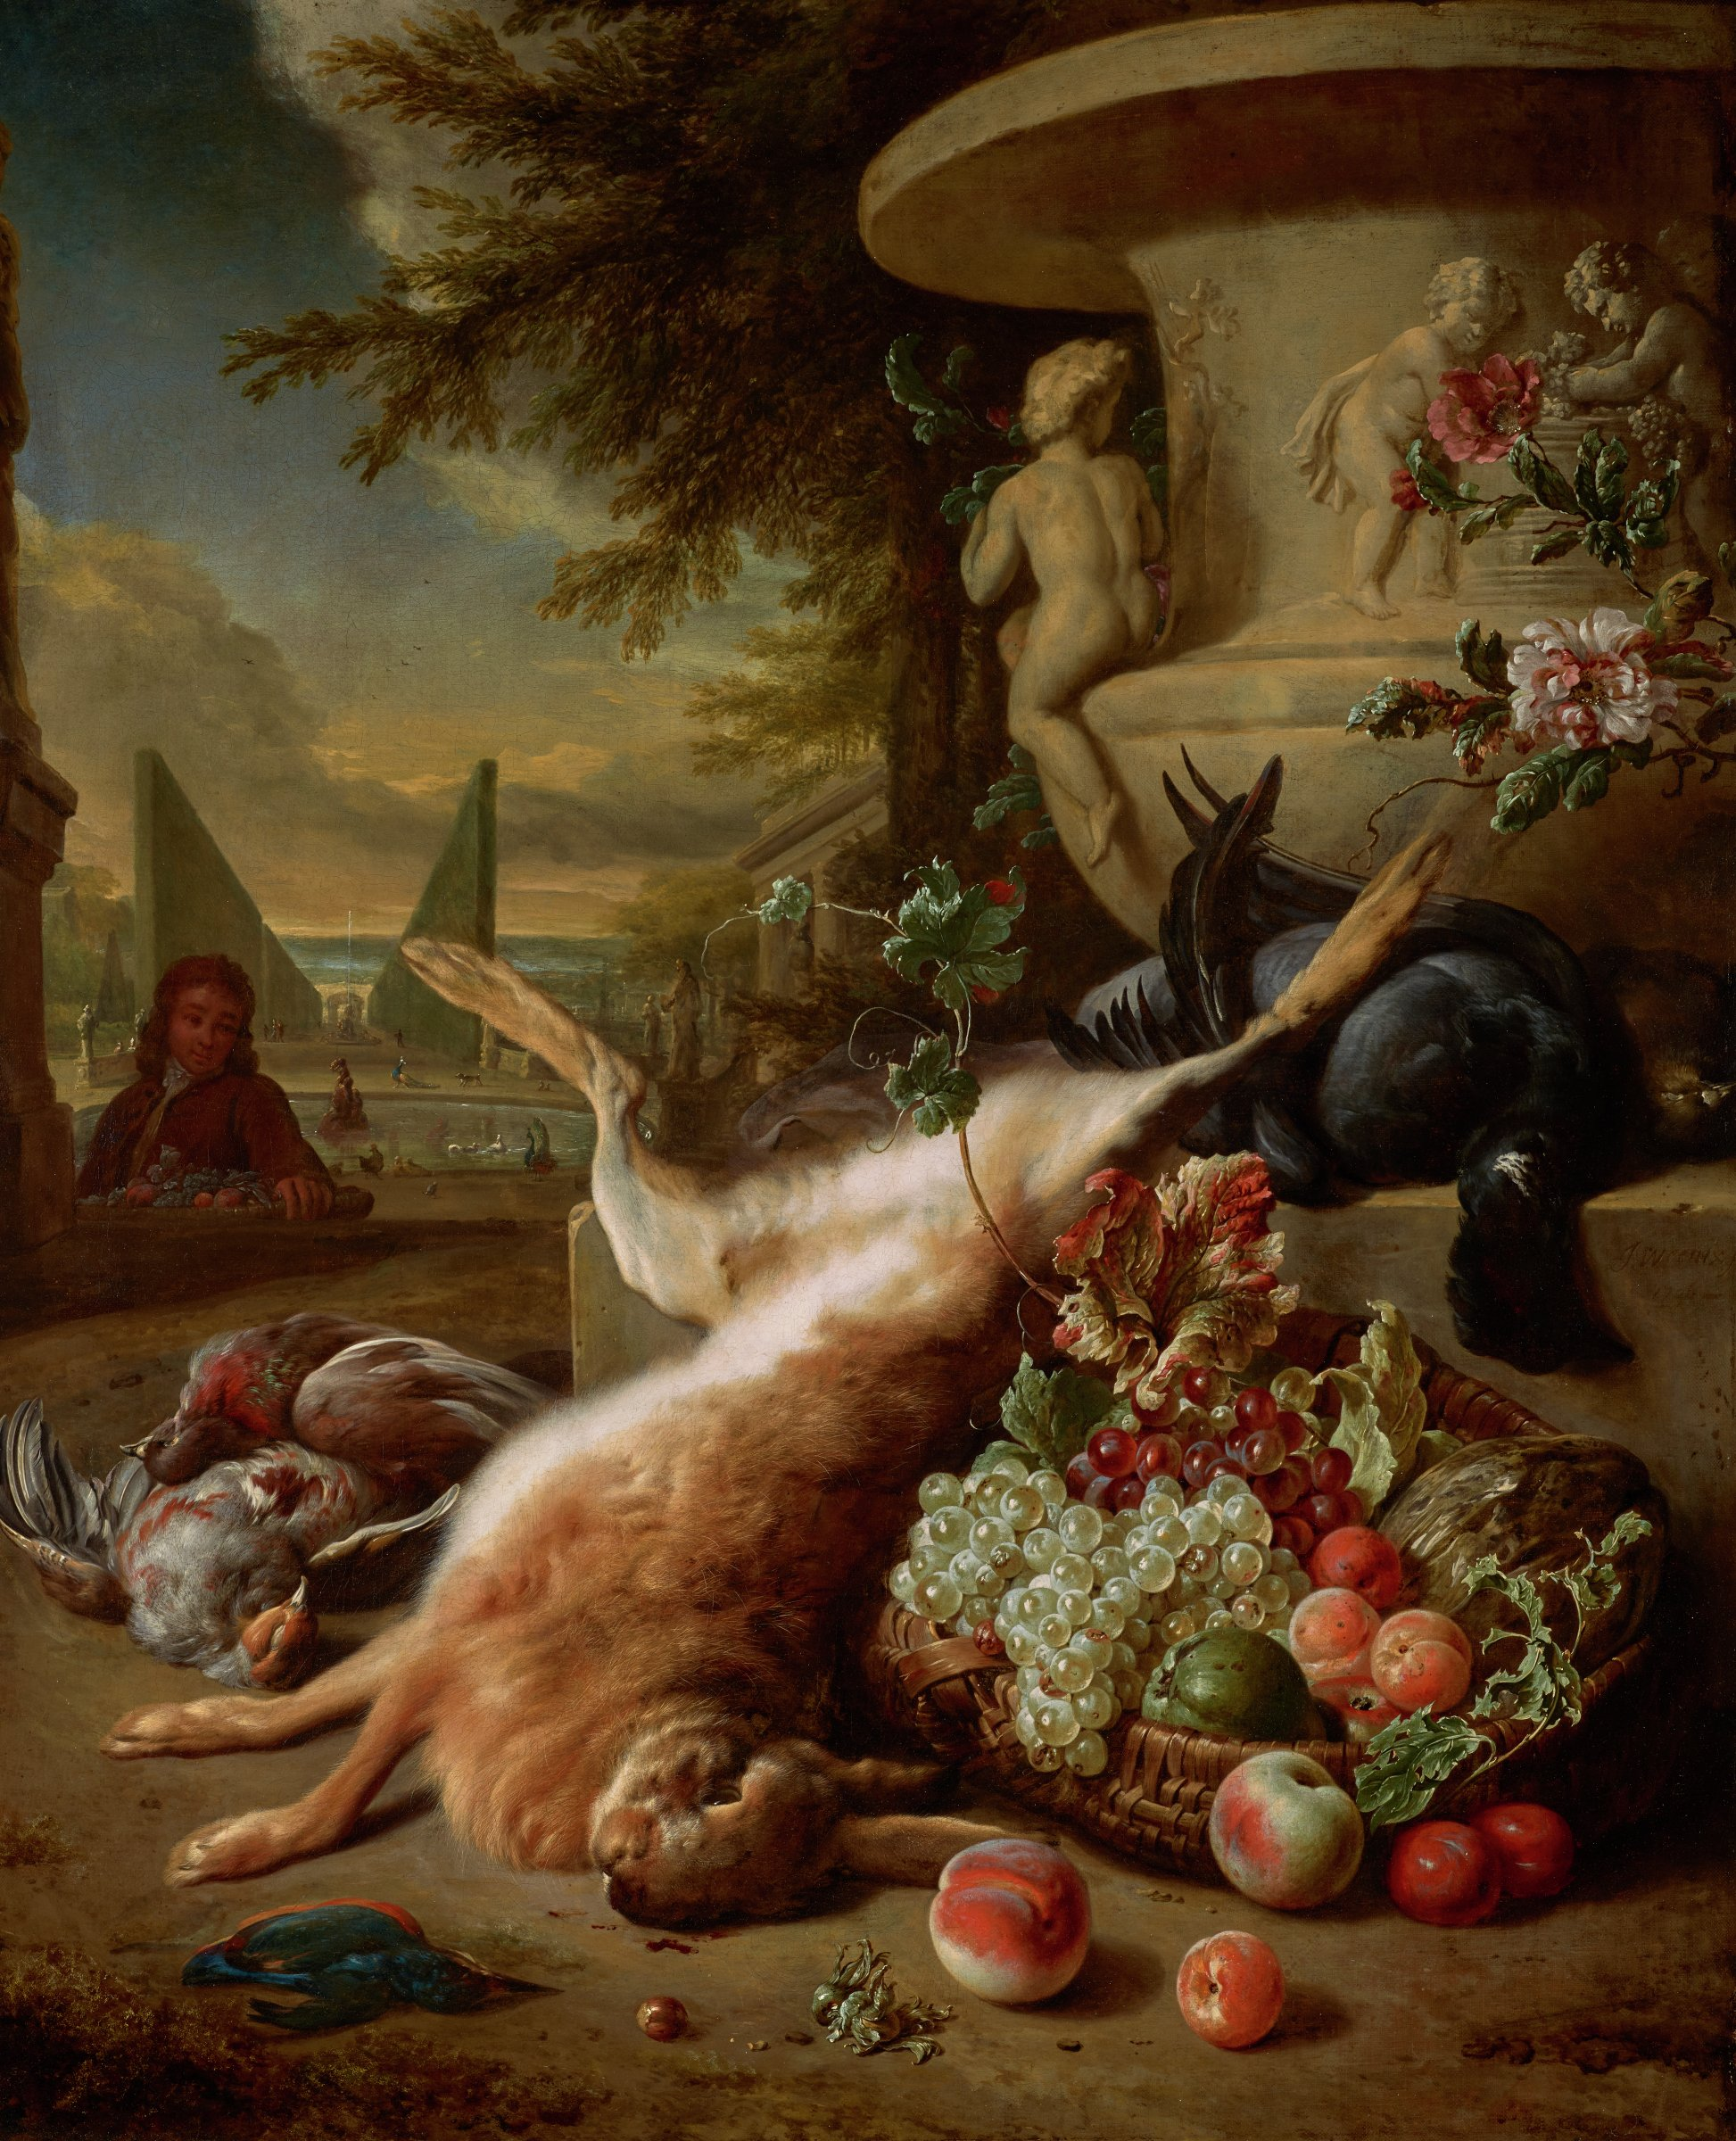 A dead hare is draped over a ledge in an outdoor garden setting, surrounded by a goose, two partridges, and a kingfisher. The bird on the ledge on the far right not identified. A melon, grapes, peach, apricot, and plums are lying in a basket to the right of the hare. Two peaches and three plums have fallen out of the basket. In the foreground are two hazelnuts. The upper right is dominated by a large garden vase. A vista into a garden setting with ponds and a fountain, tall hedges, buildings and sculptures is on the left. A young male figure is shown bust length behind a drop in the terrain, carrying a basket with fruit, and looking towards the viewer.